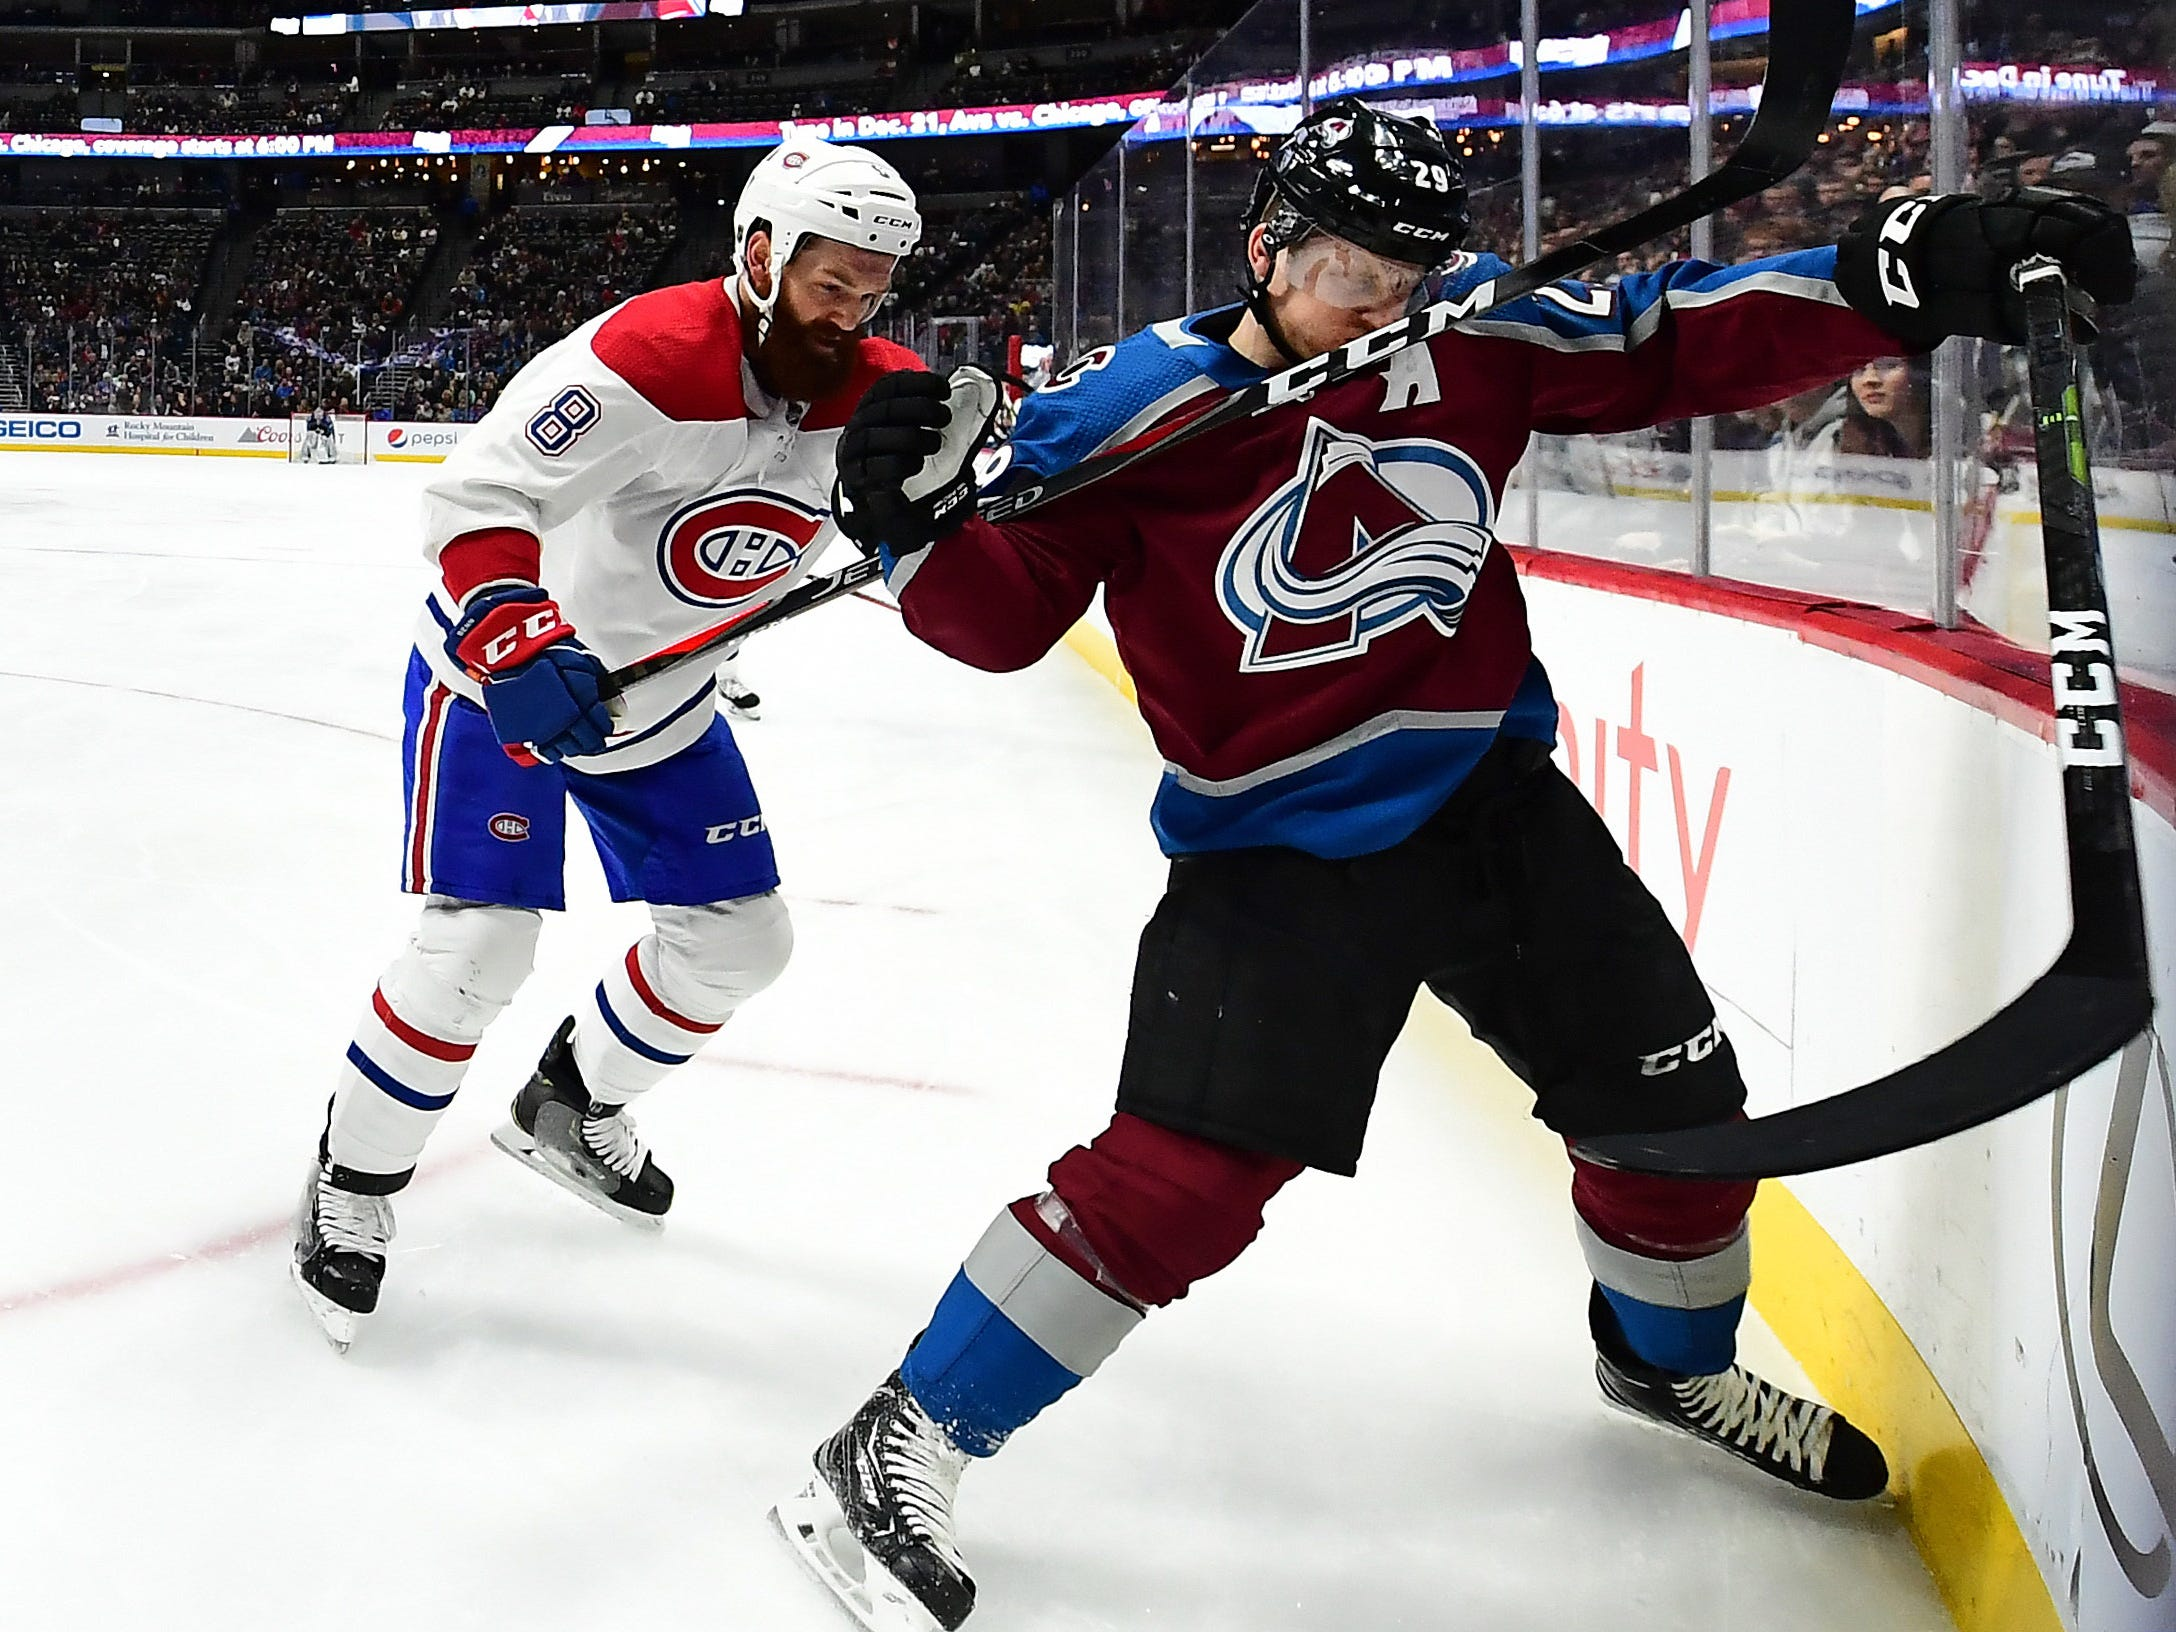 Dec. 19: Montreal Canadiens defenseman Jordie Benn (8) high sticks Colorado Avalanche center Nathan MacKinnon in the second period at the Pepsi Center. The Avalanche won the game, 2-1.